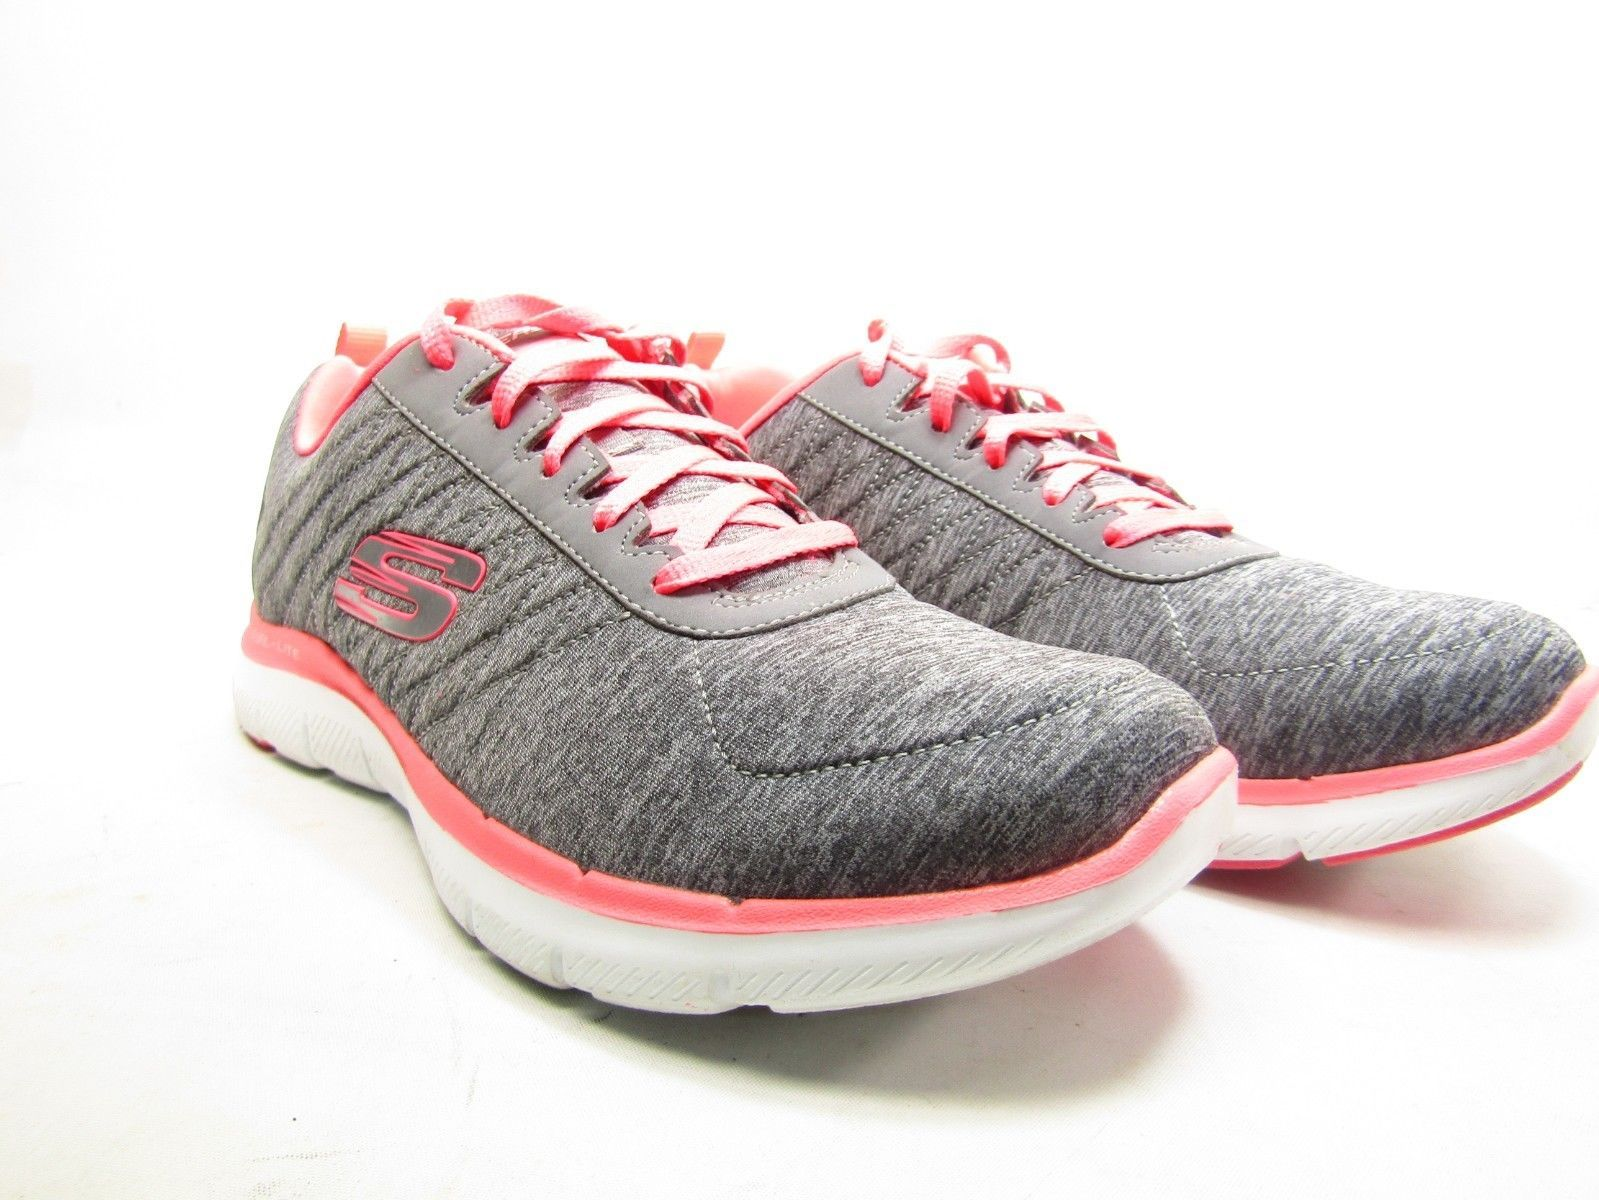 Skechers Flex Appeal 2.0 Womens Sneakers Gray/Coral Size 8.5